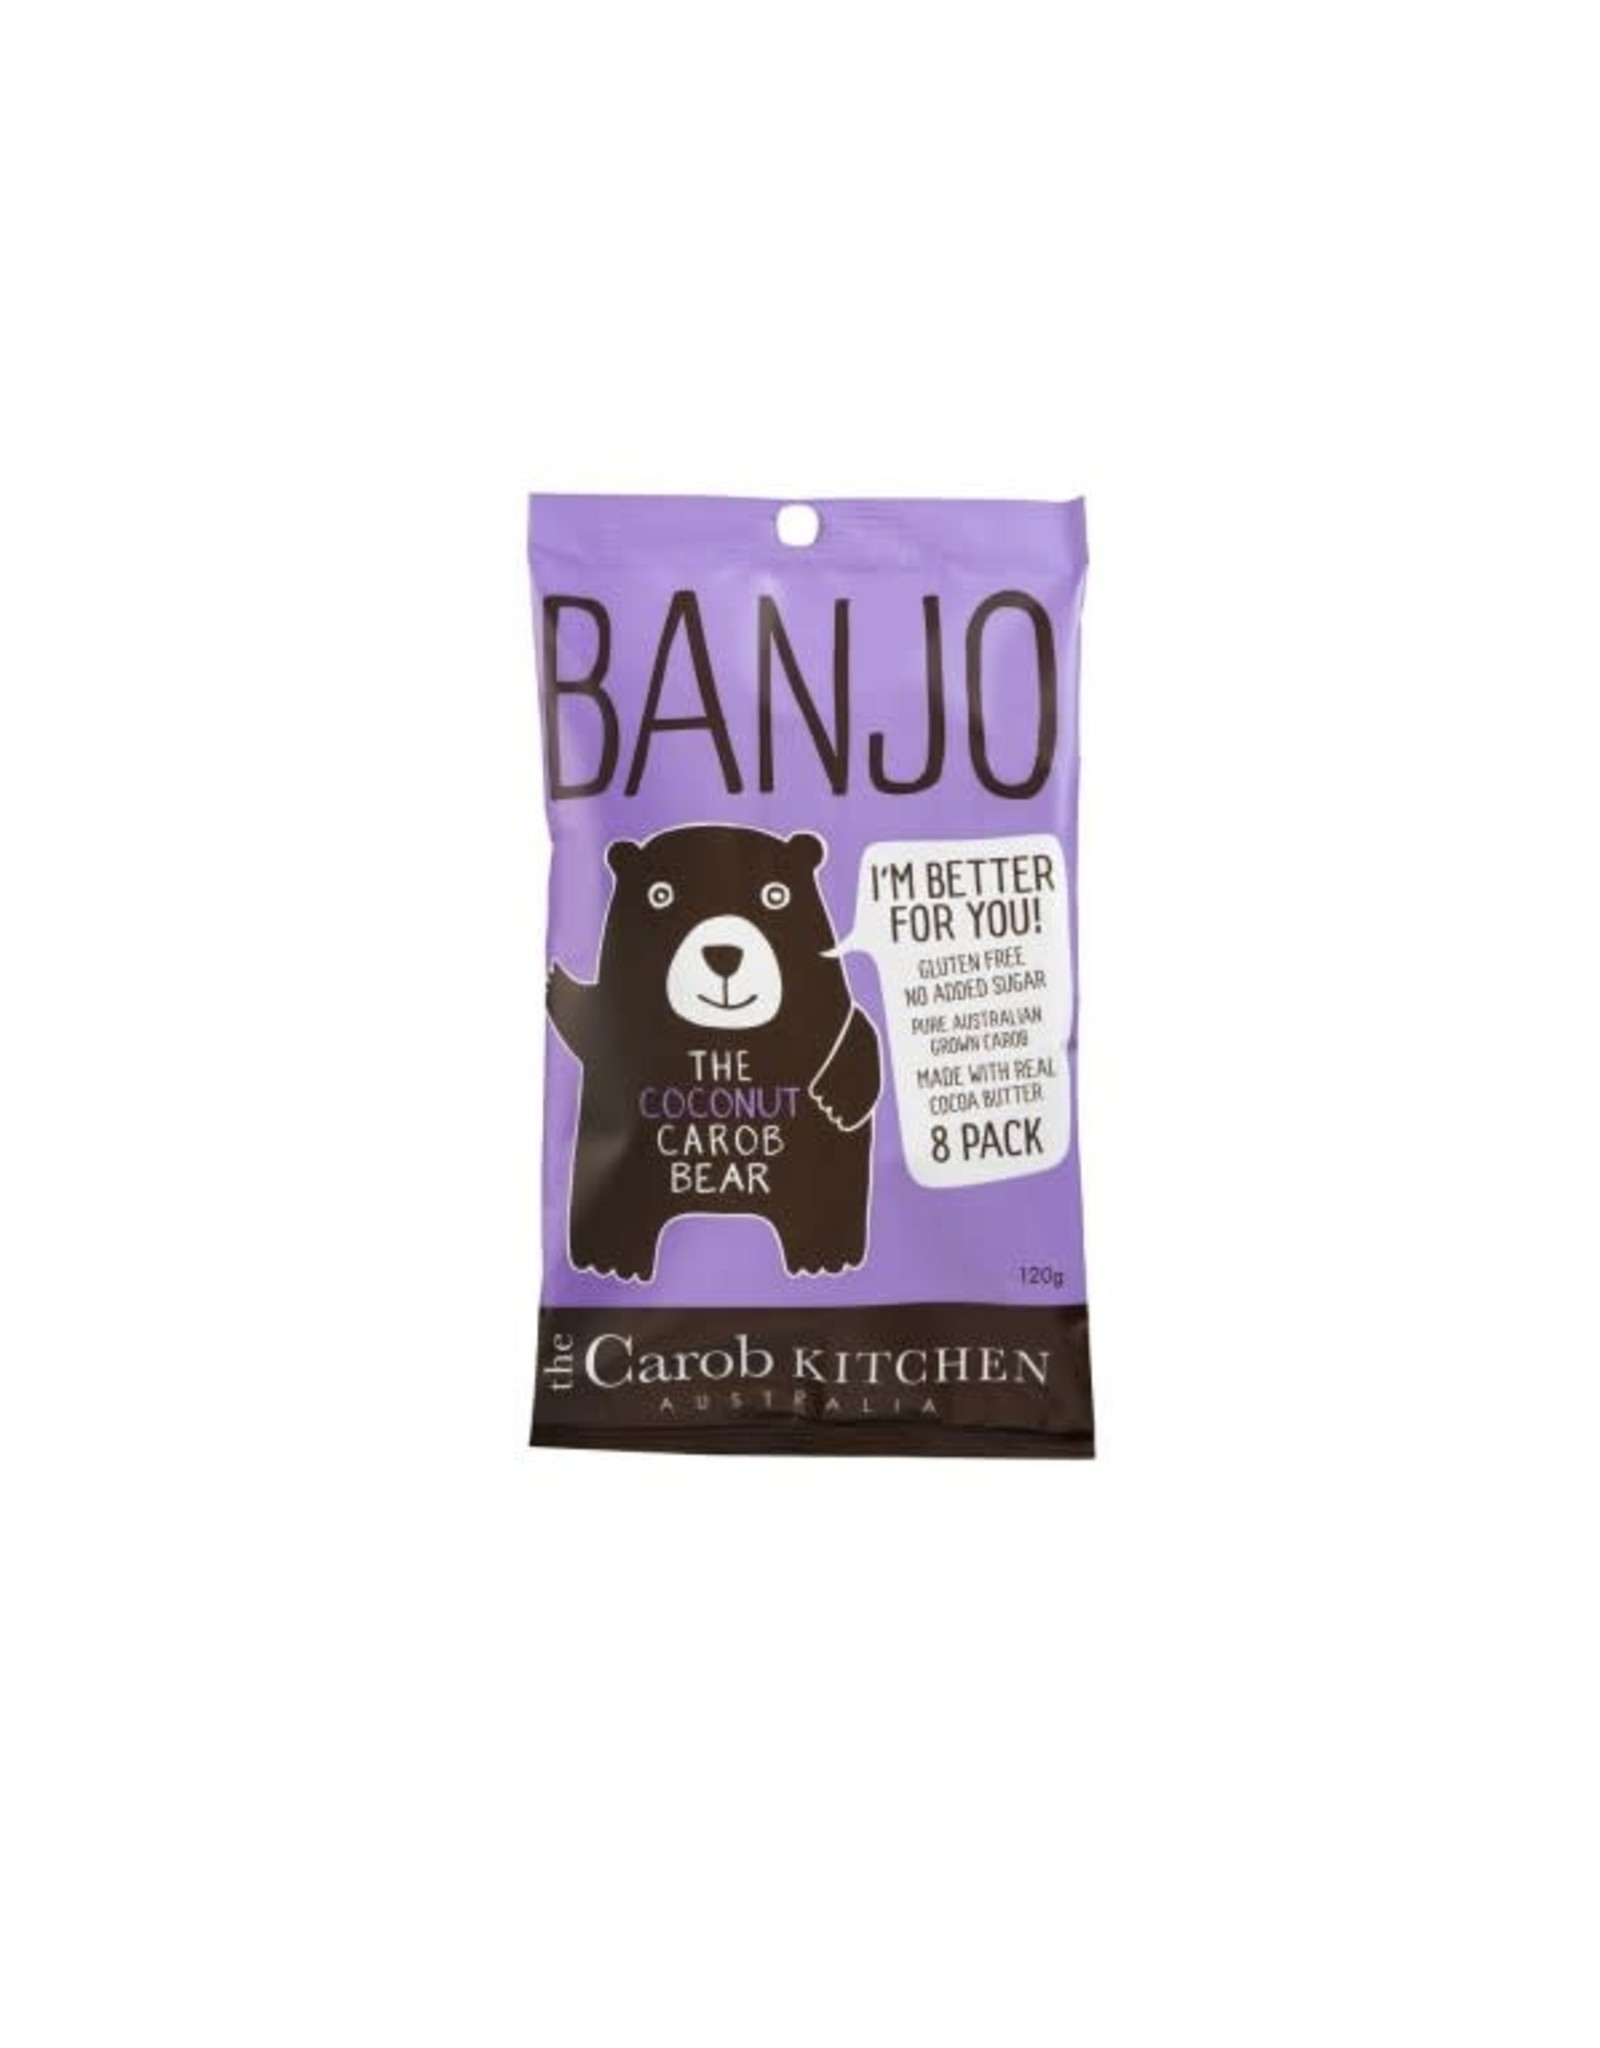 The Carob Kitchen Banjo Bear Coconut 8x 15g